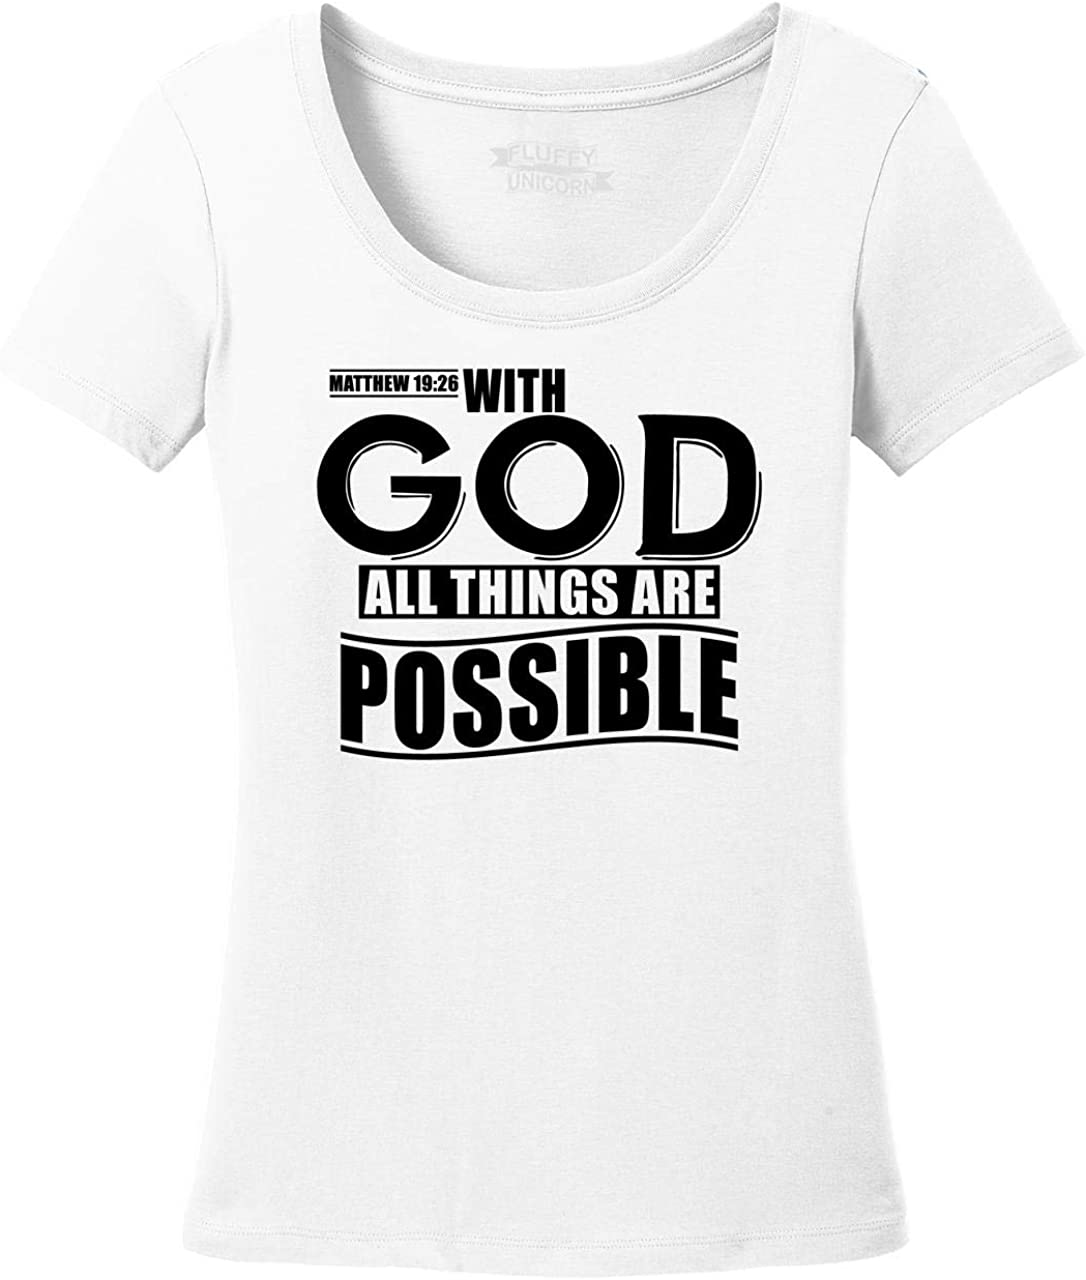 Comical Shirt Ladies with God All Things are Possible Scoop Tee